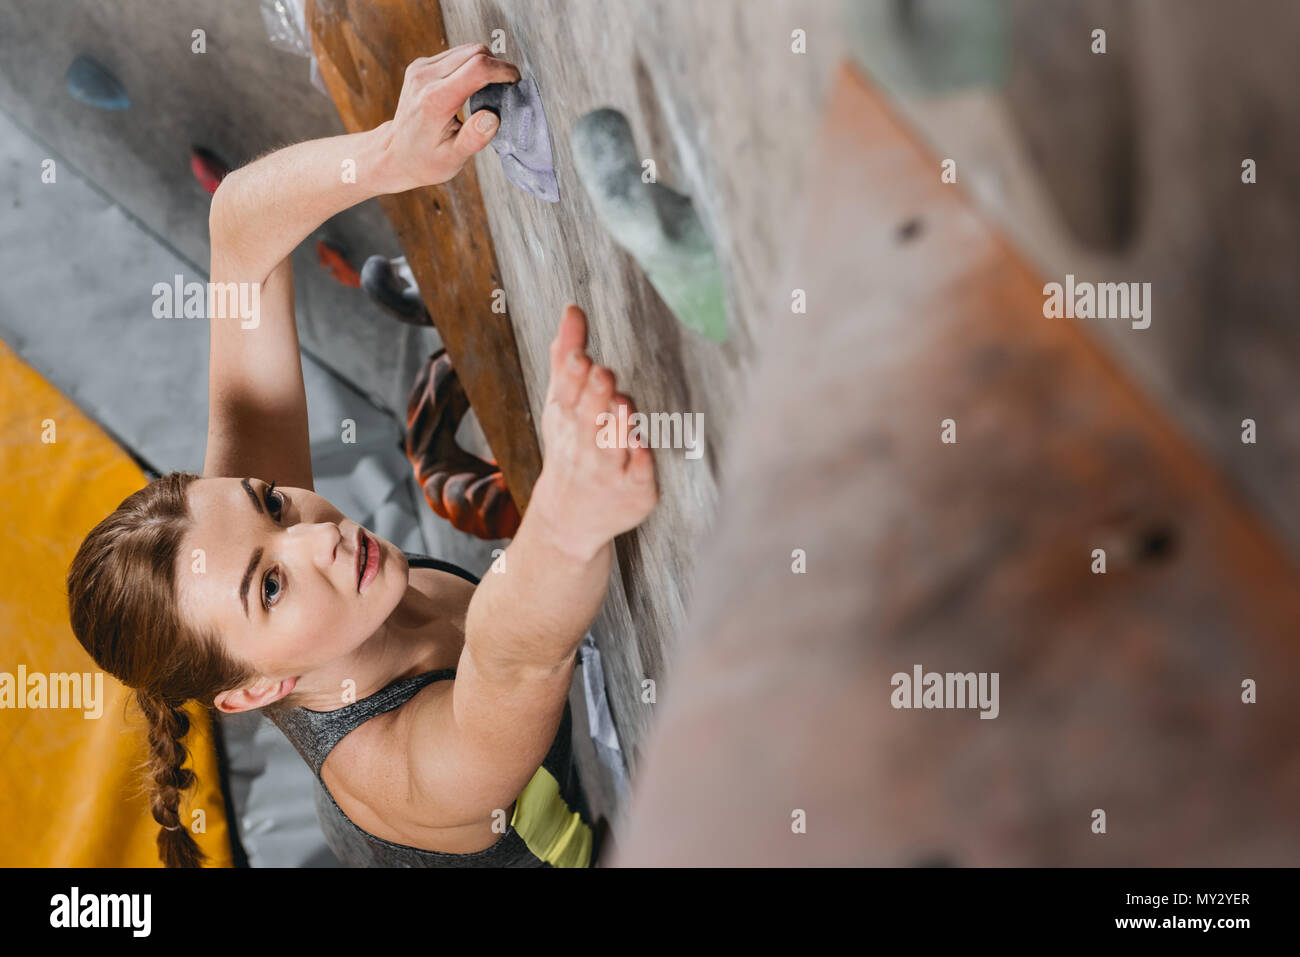 High-angle shot of young woman in sportive attire climbing a wall with grips at gym - Stock Image